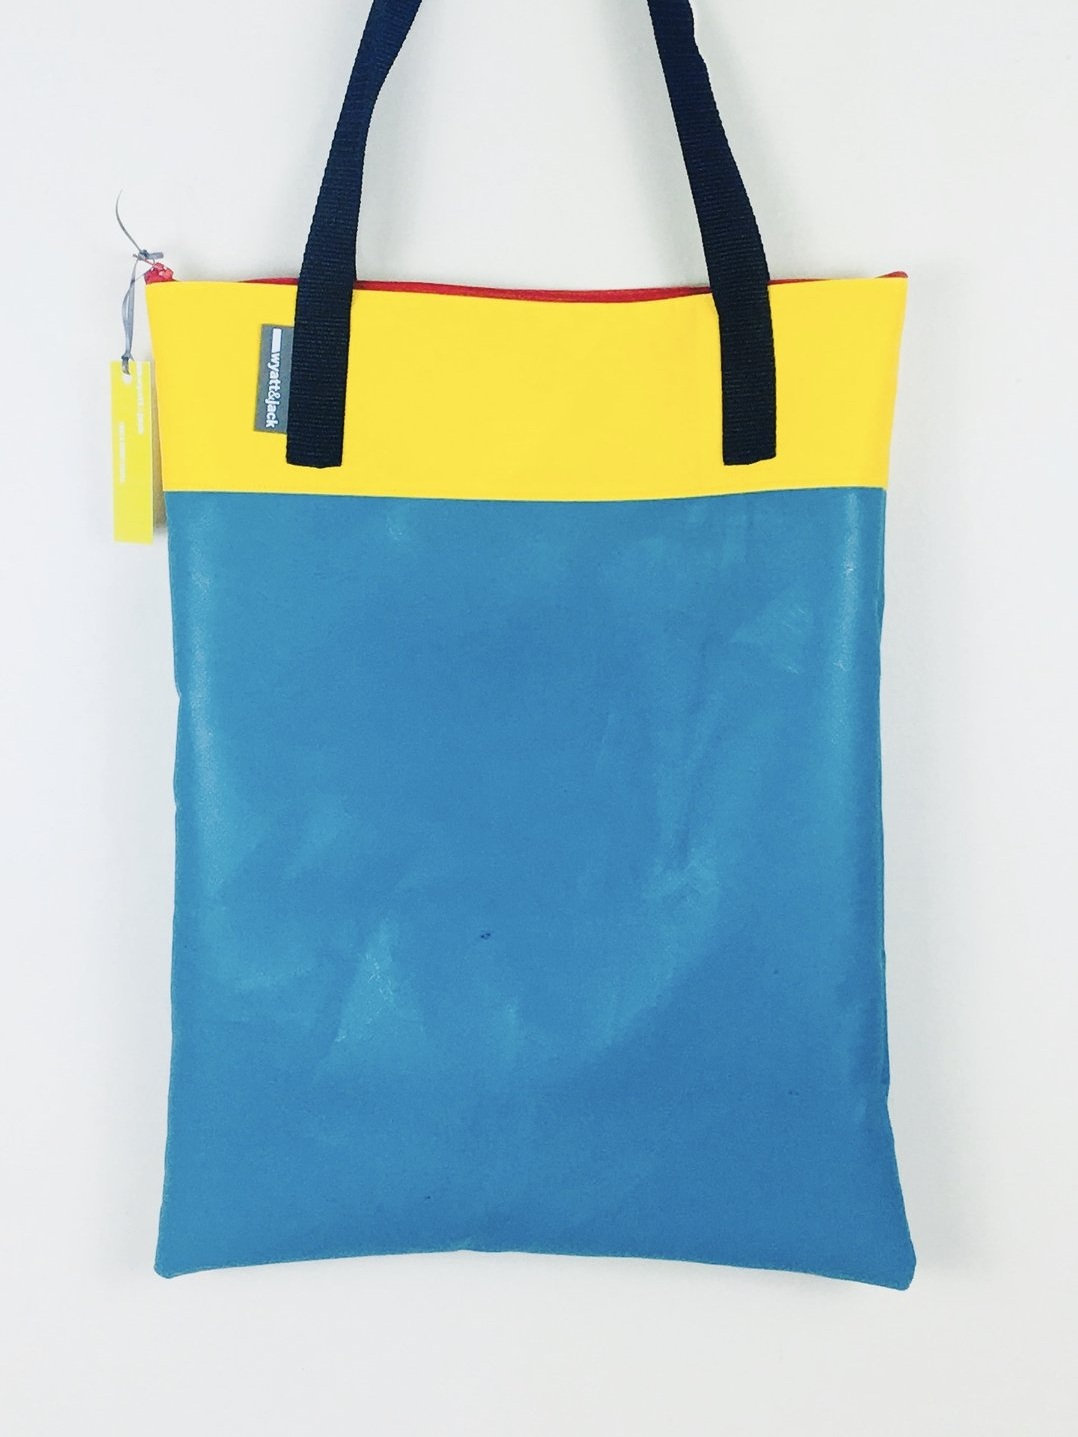 2 Tone Tote - These are wipe clean, reusable and waterproof, now with a zipped top edge as standard, in a colour that's guaranteed to clash nicely!Dimensions W 320mm x H 350mm